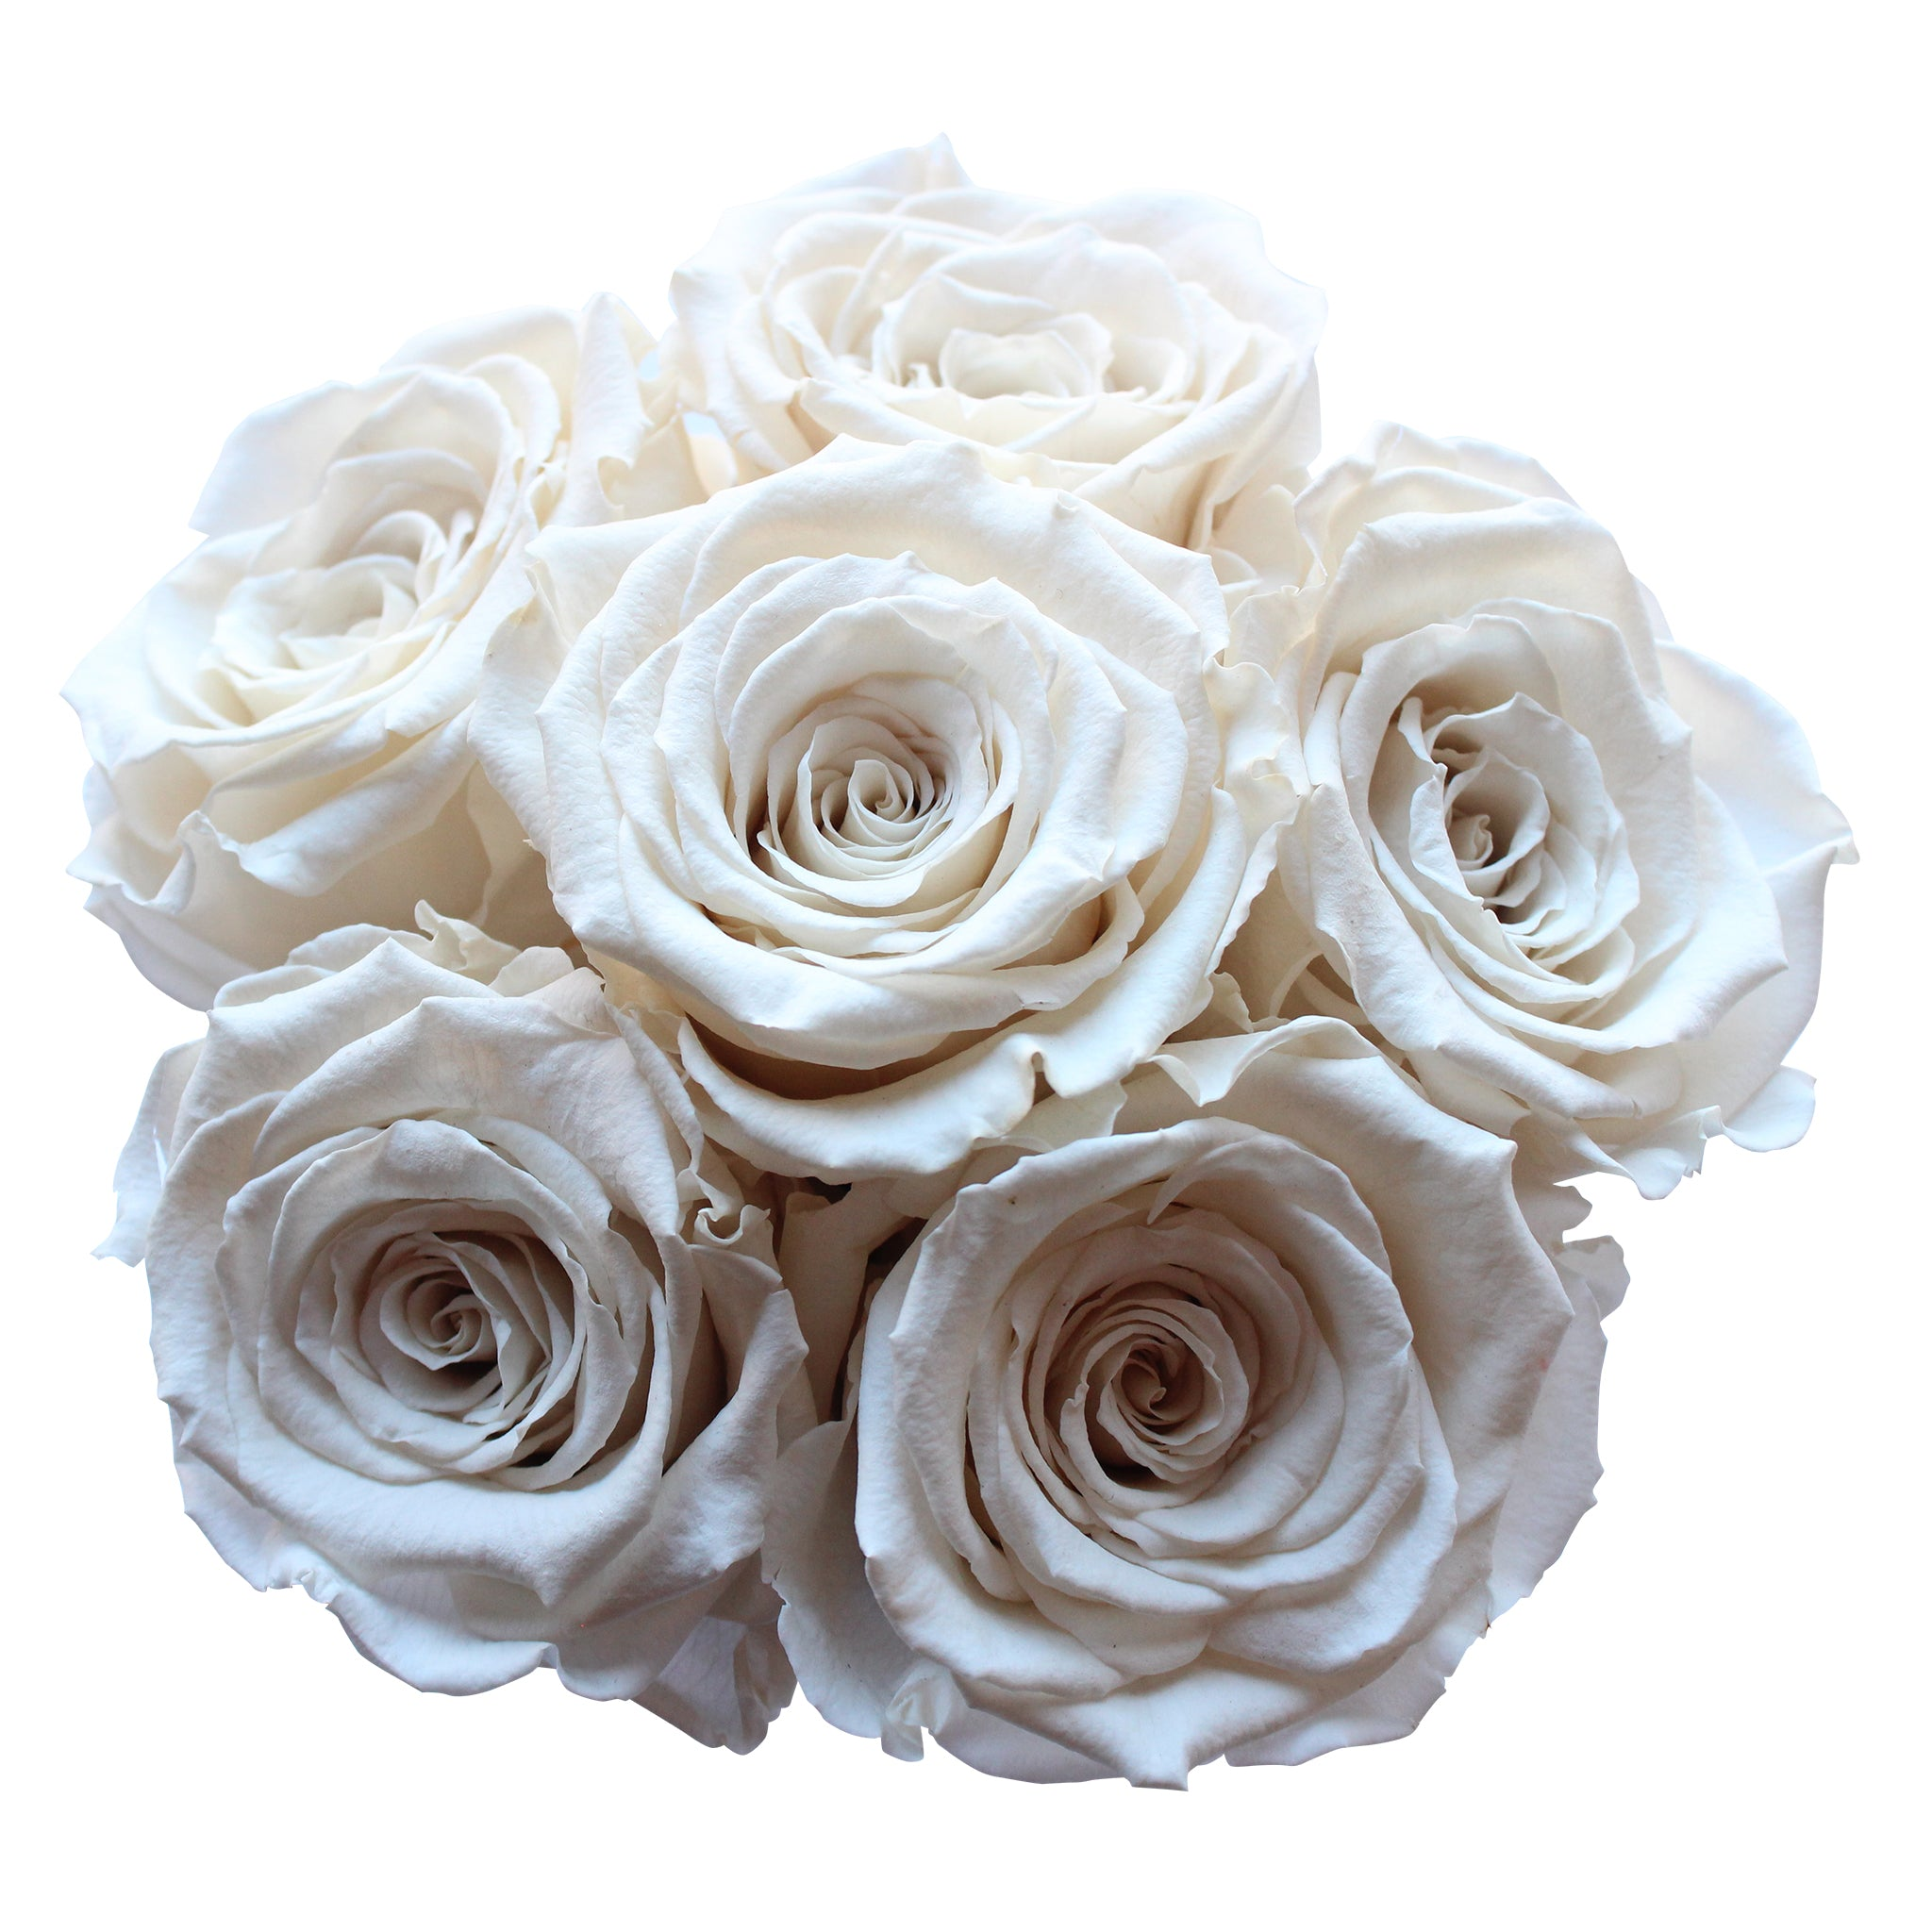 White Preserved Roses | Small White Round Rose Hat Box